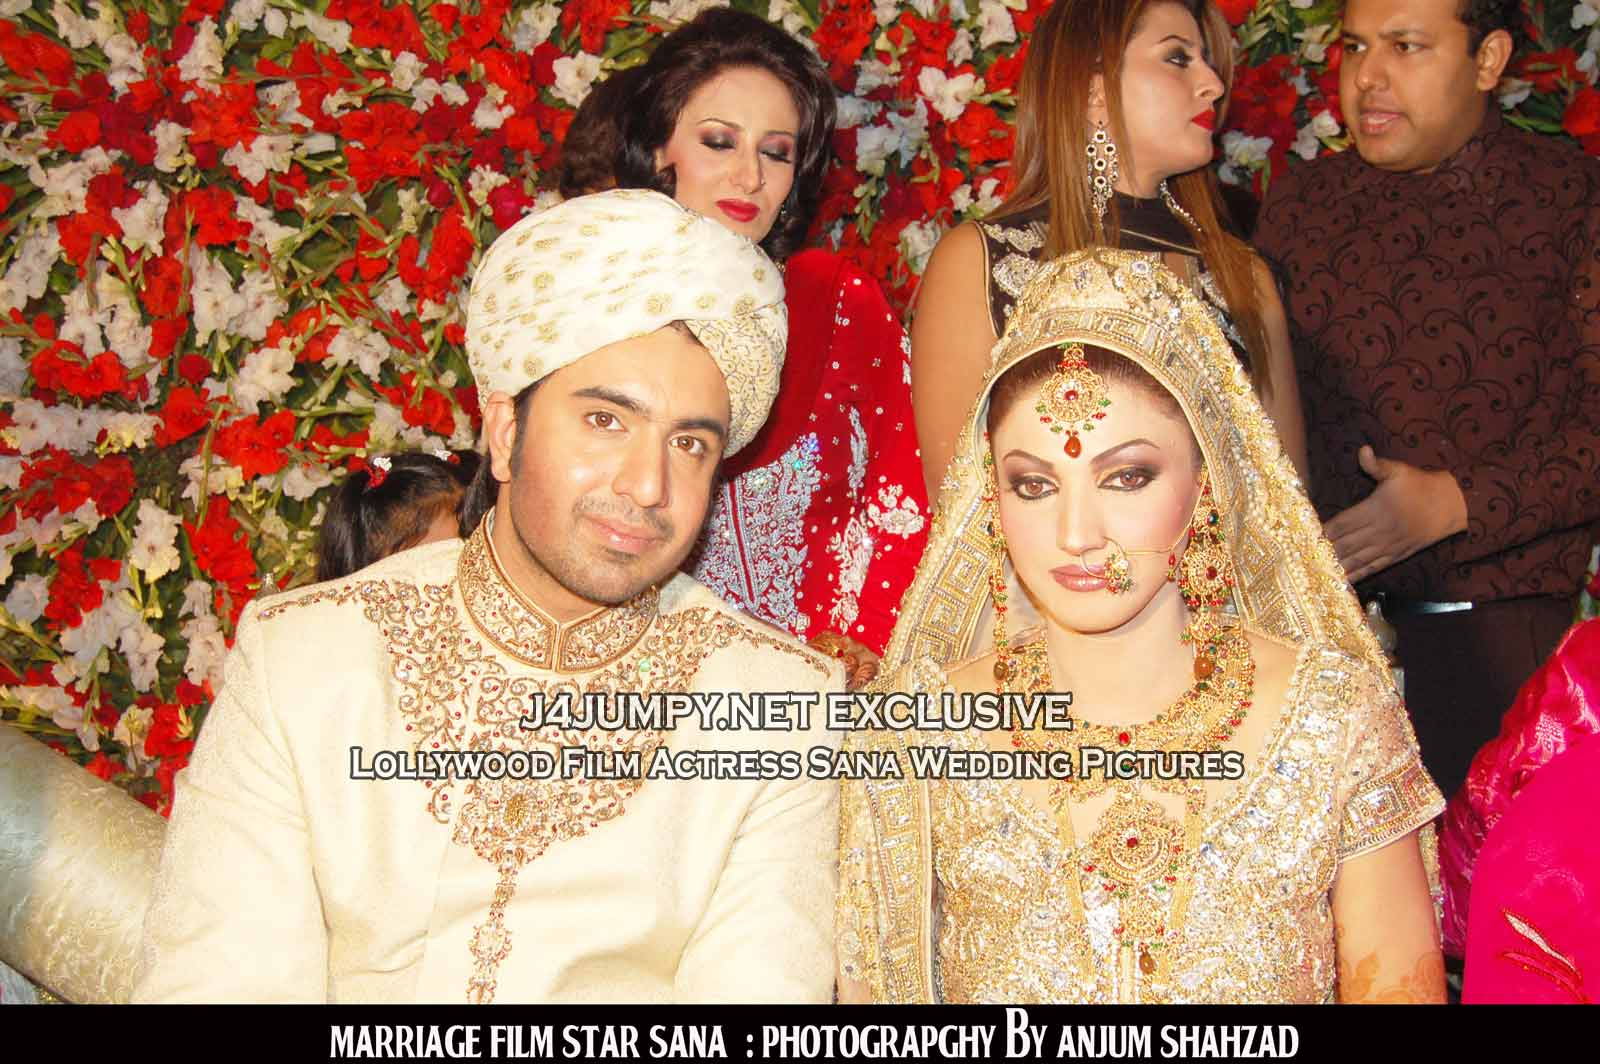 Lollywood Actress Sana Wedding Bells for Sana | J4JUMPY.